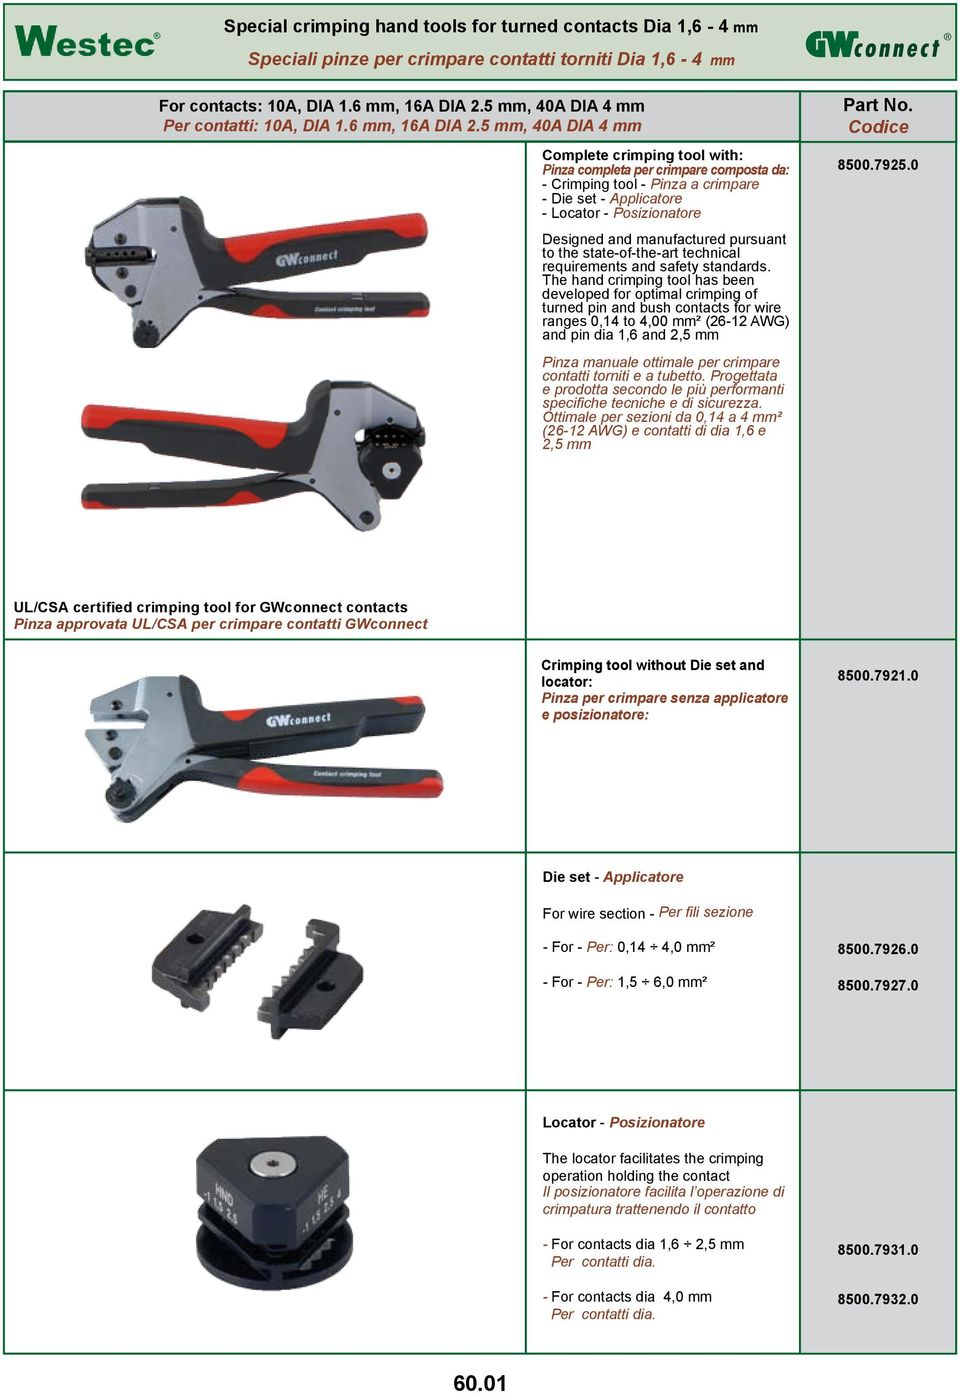 5 mm, 40A DIA 4 mm Complete crimping tool with: Pinza completa per crimpare composta da: - Crimping tool - Pinza a crimpare - Die set - Applicatore - Locator - Posizionatore Designed and manufactured